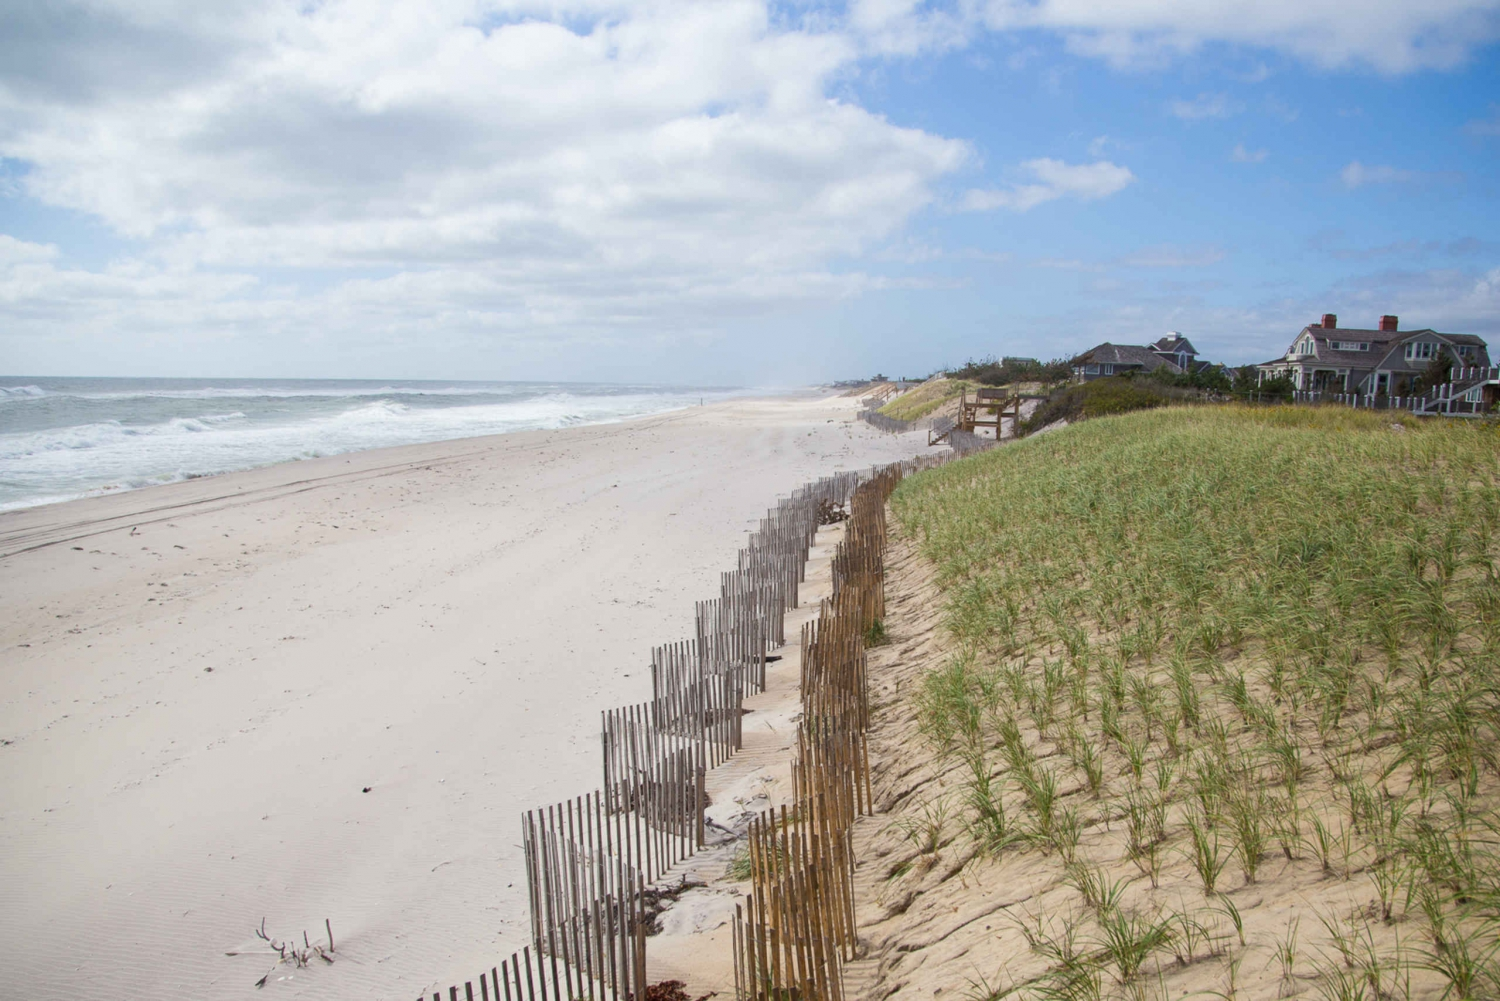 The Hamptons, Sag Harbor & Outlet Shopping Day Trip from NYC